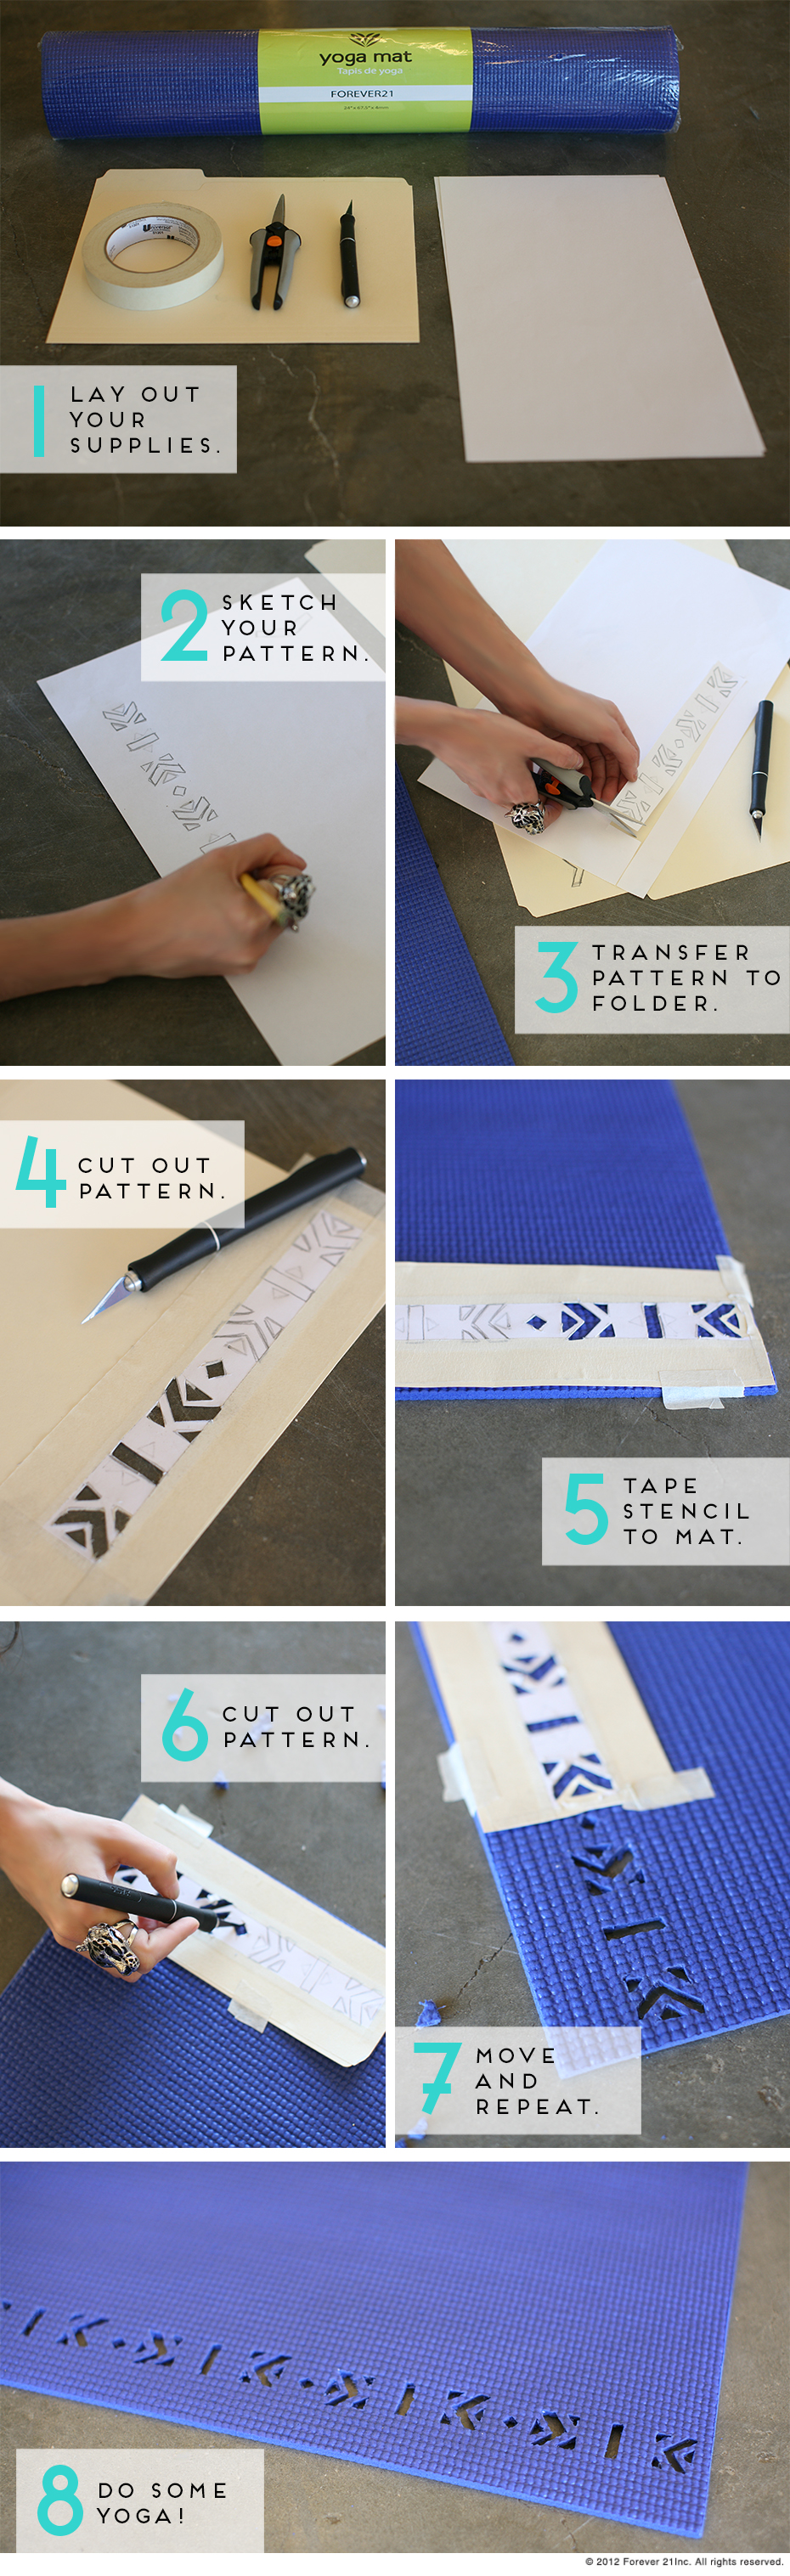 Yoga Mat DIY-steps